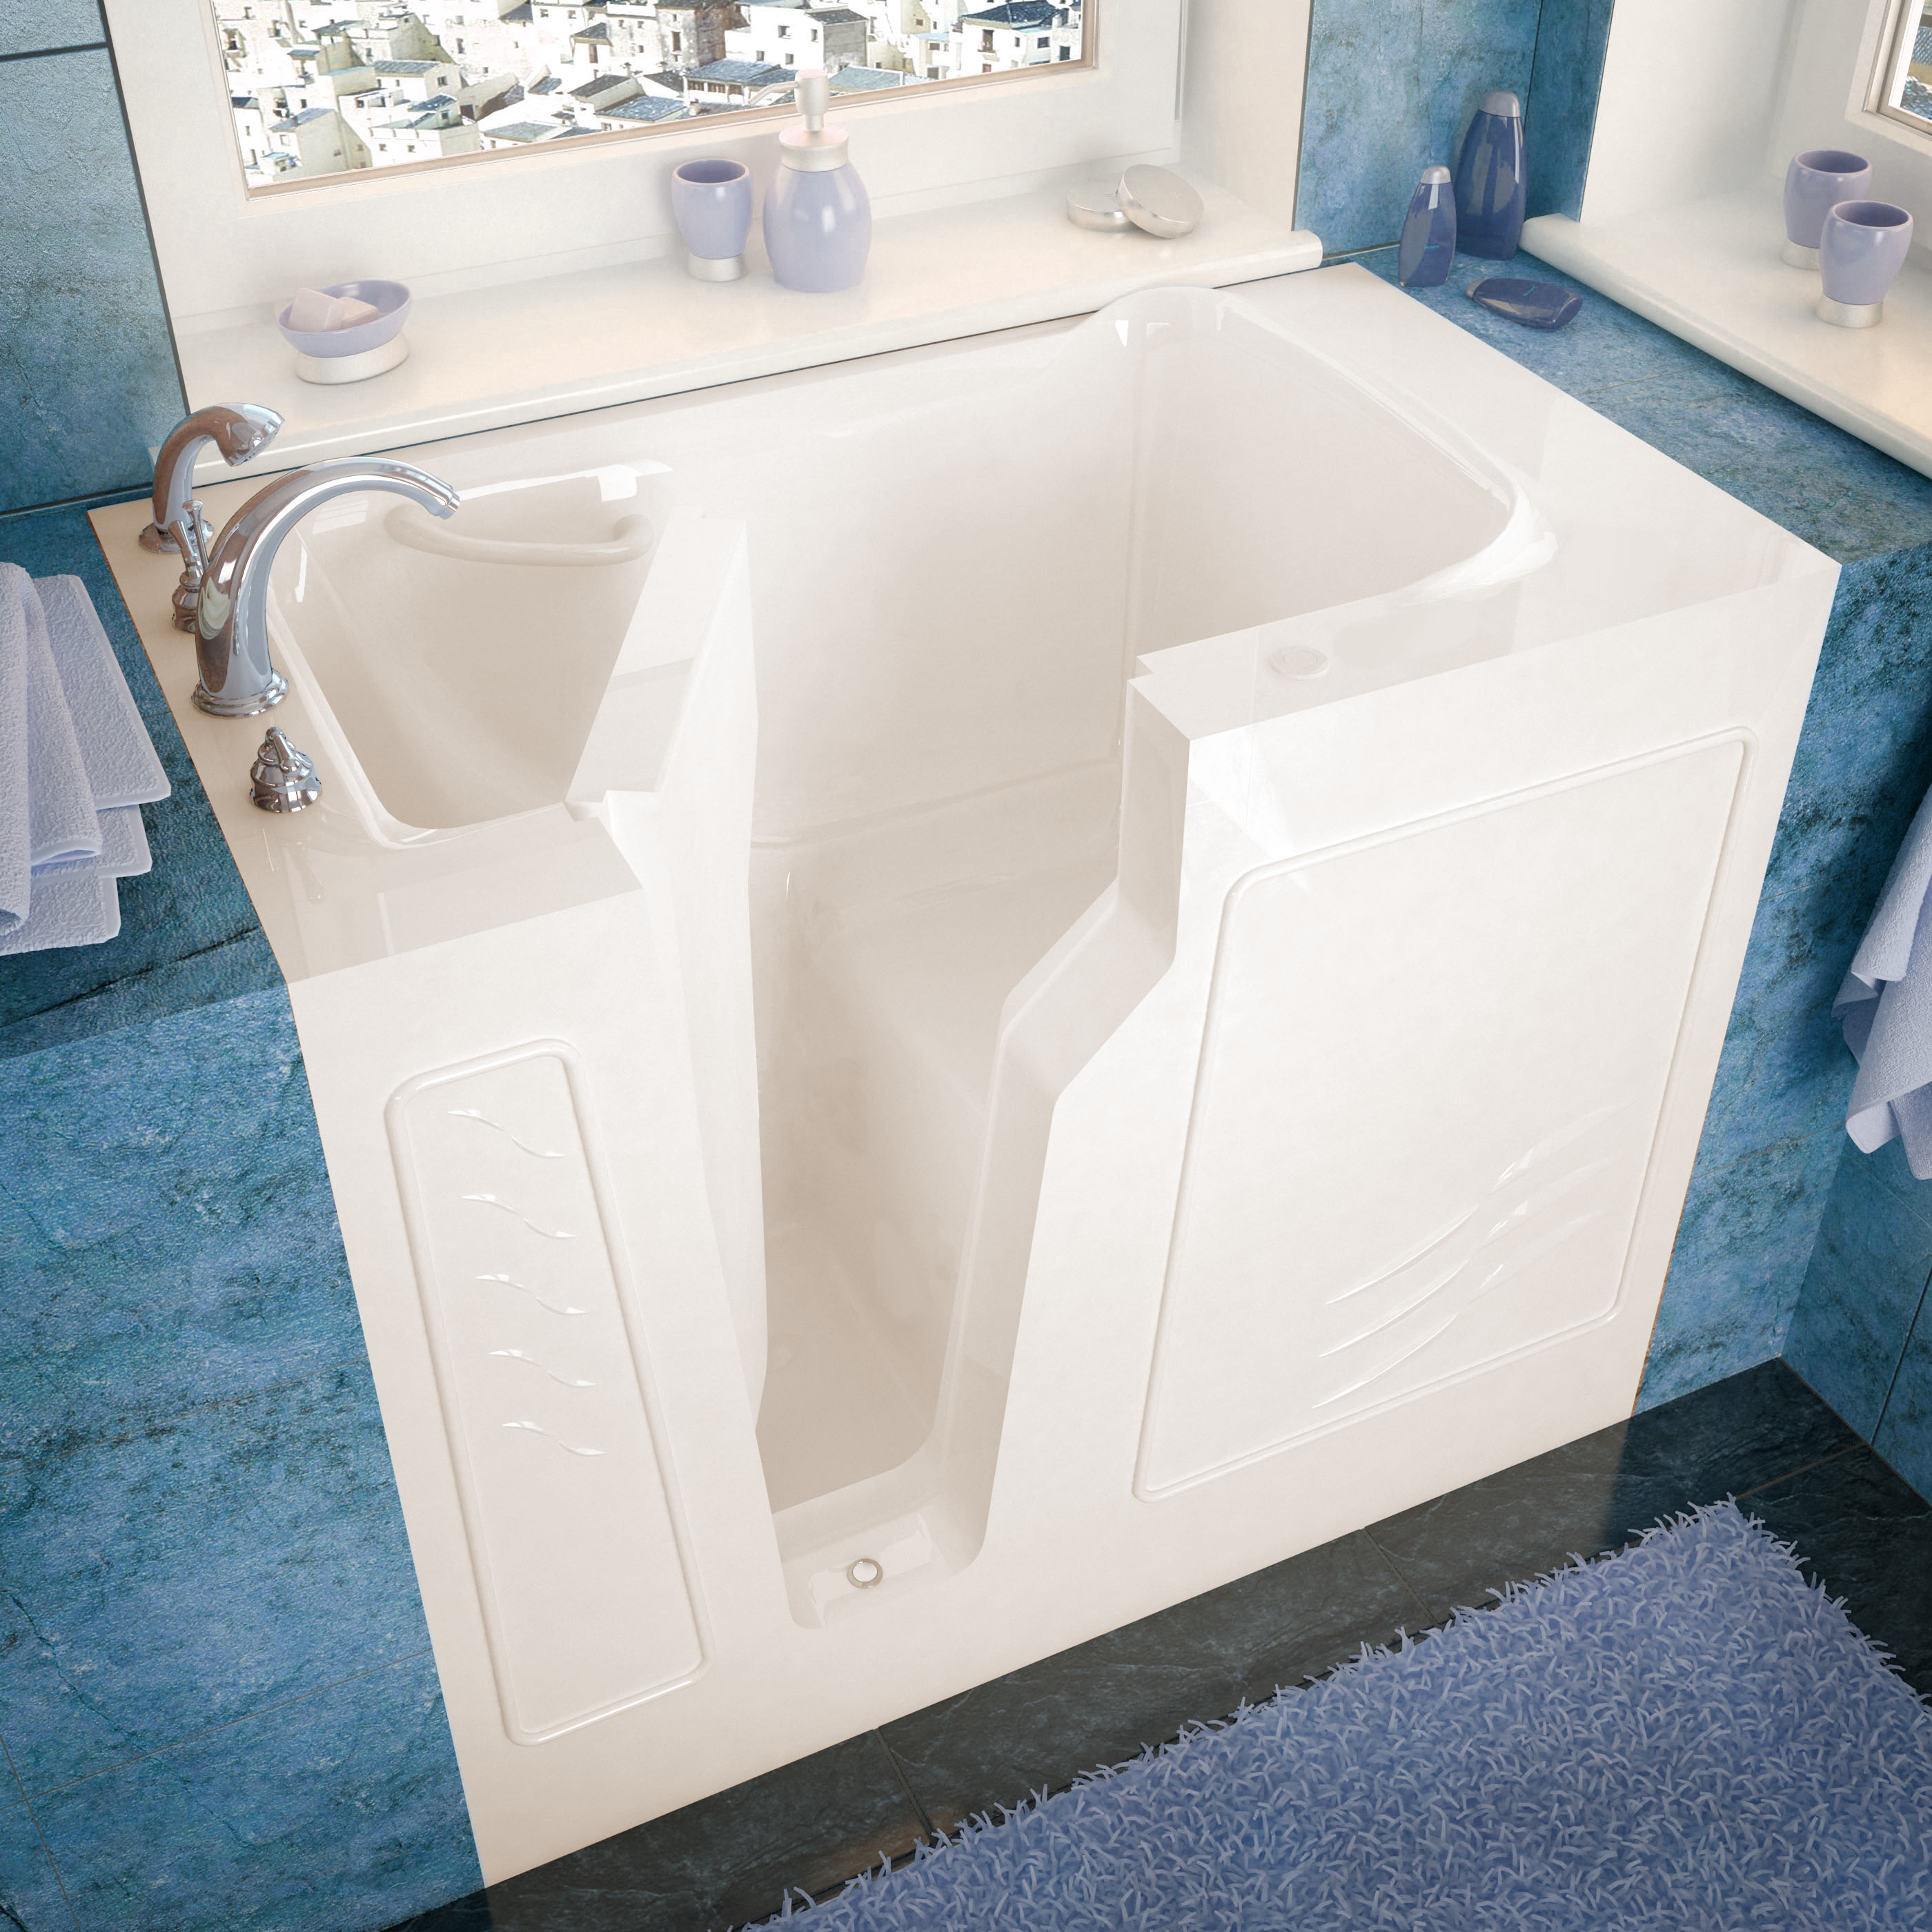 26x46 Left Drain Biscuit Soaking Walk-In Bathtub